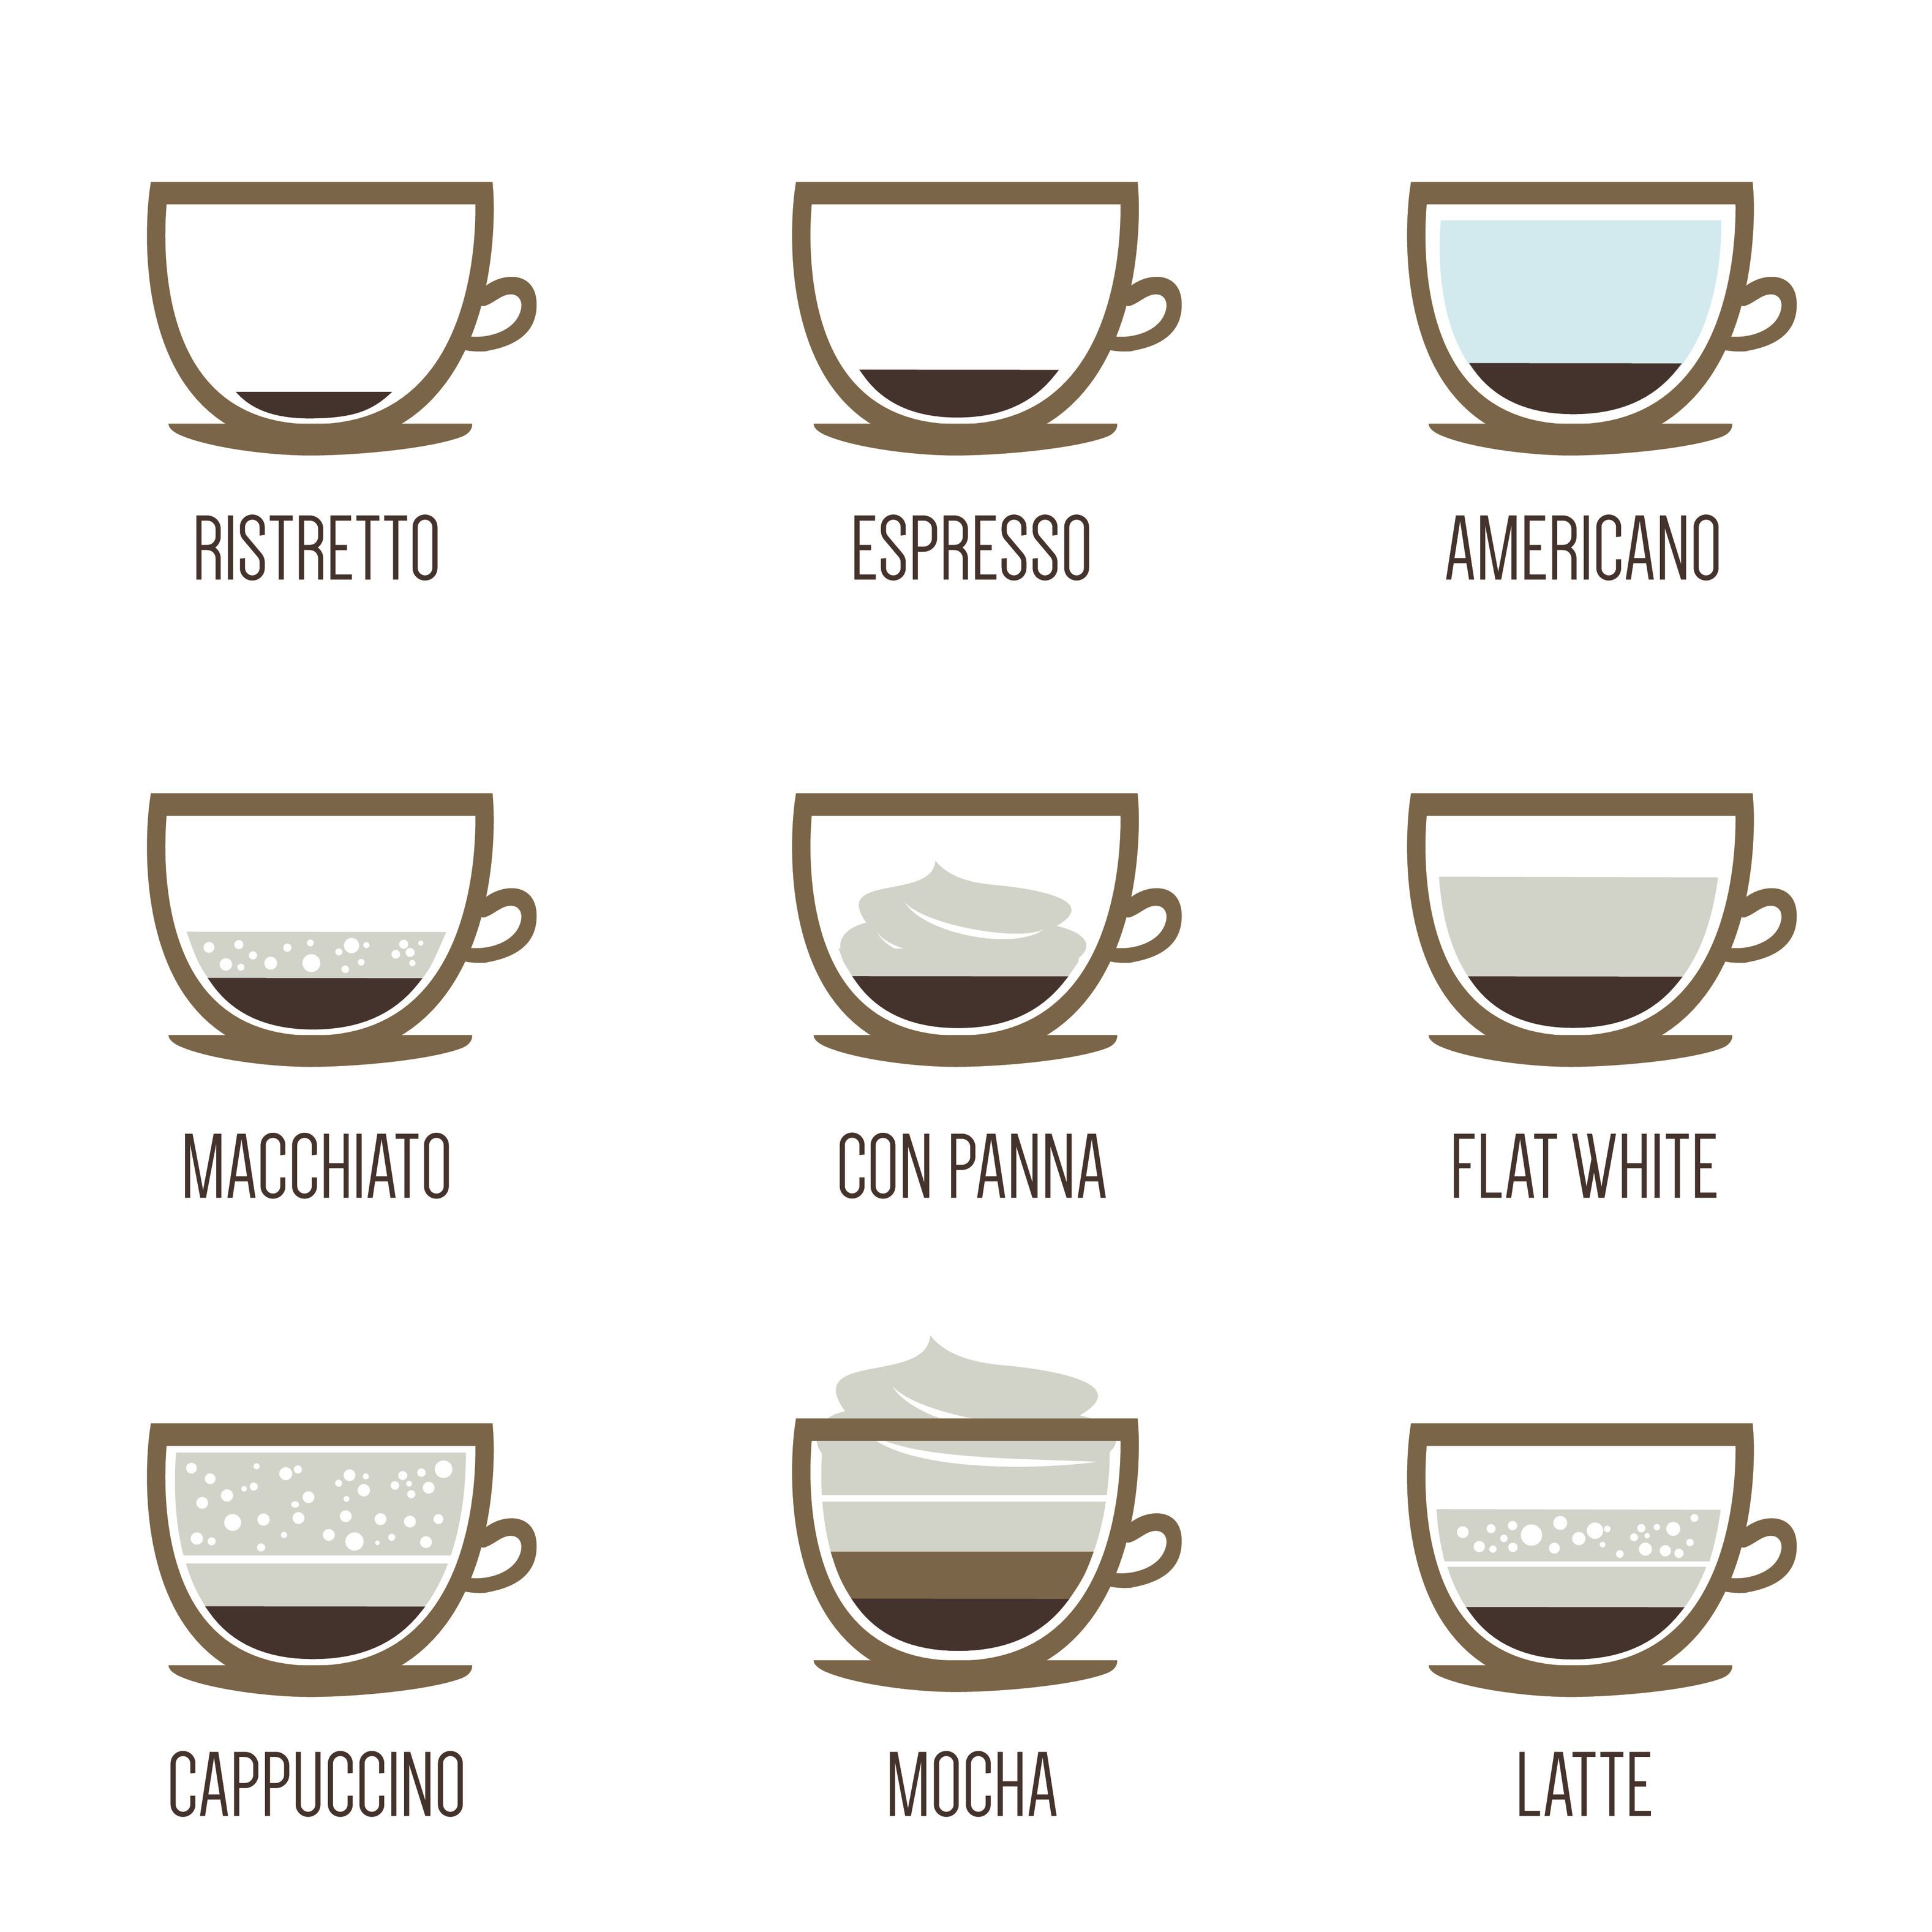 What Is The Difference Between Coffees?